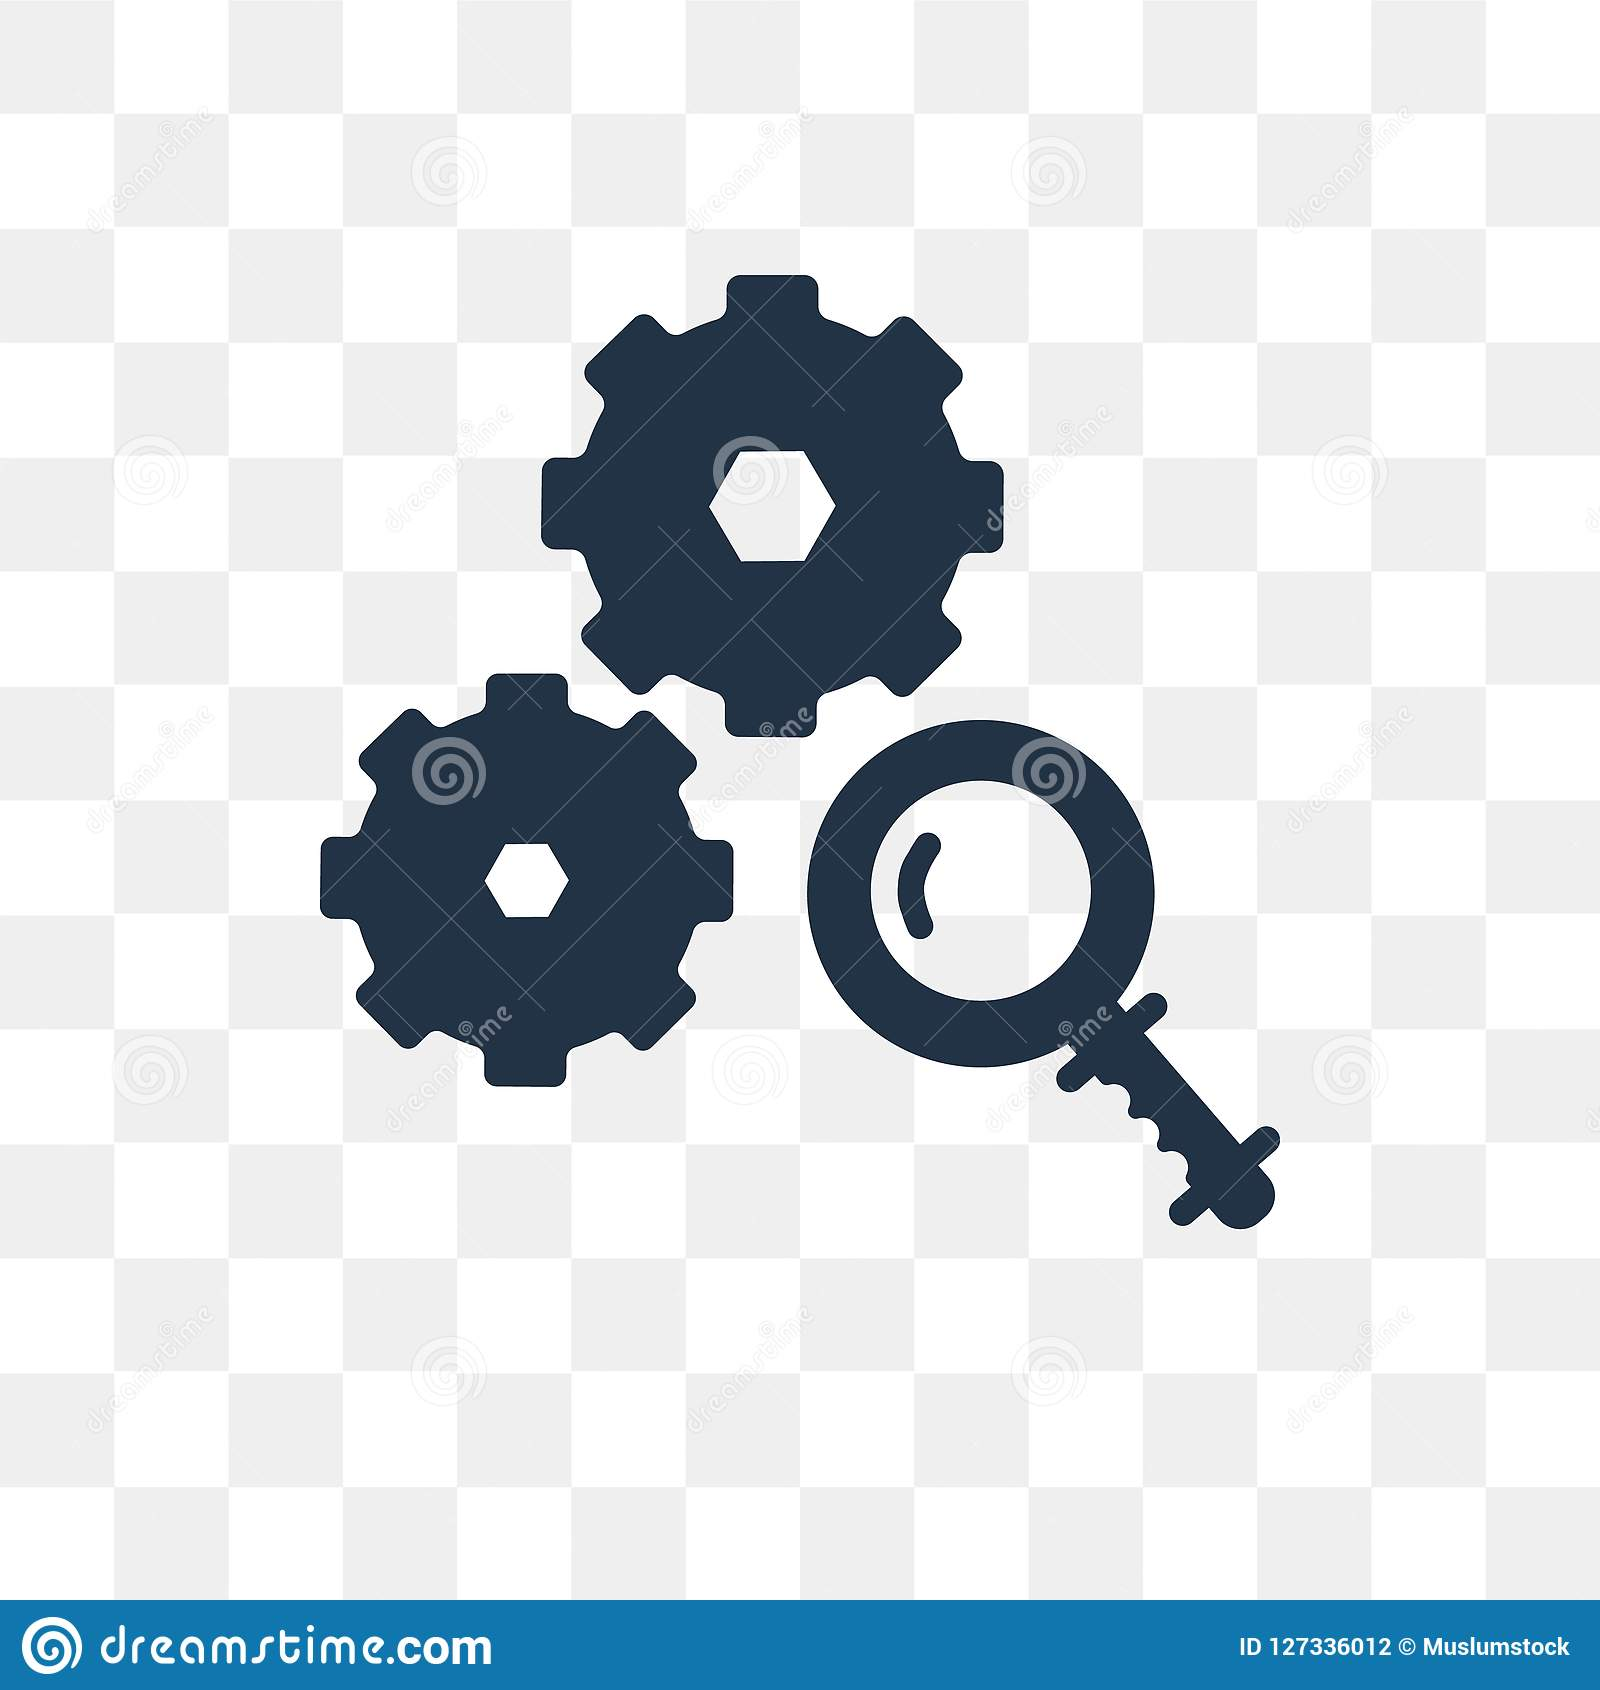 Analyze Png No Background - Analyze Vector Icon Isolated On Transparent Background, Analyze ...